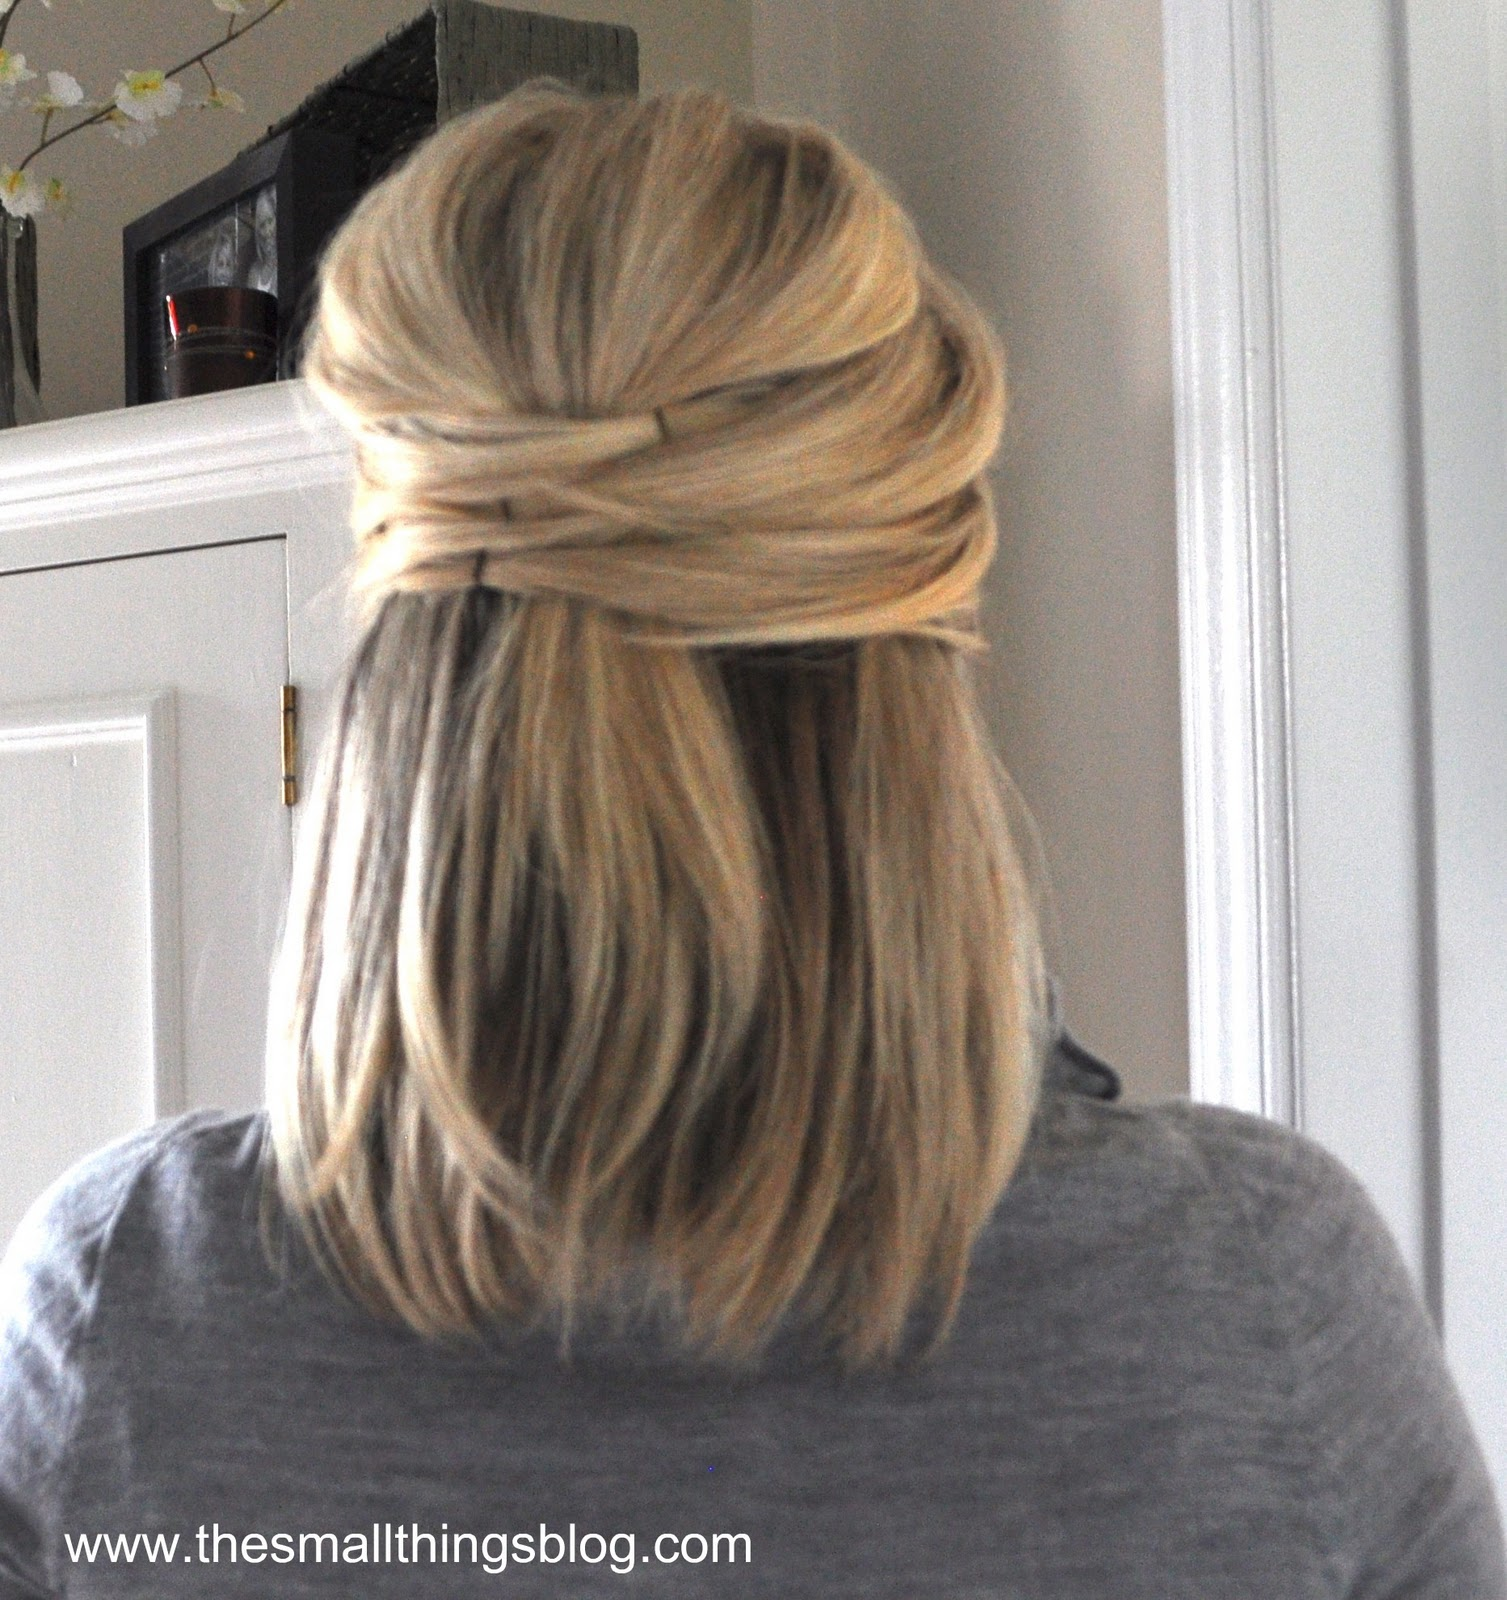 Wedding Hairstyles For Thin Hair: The Small Things Blog